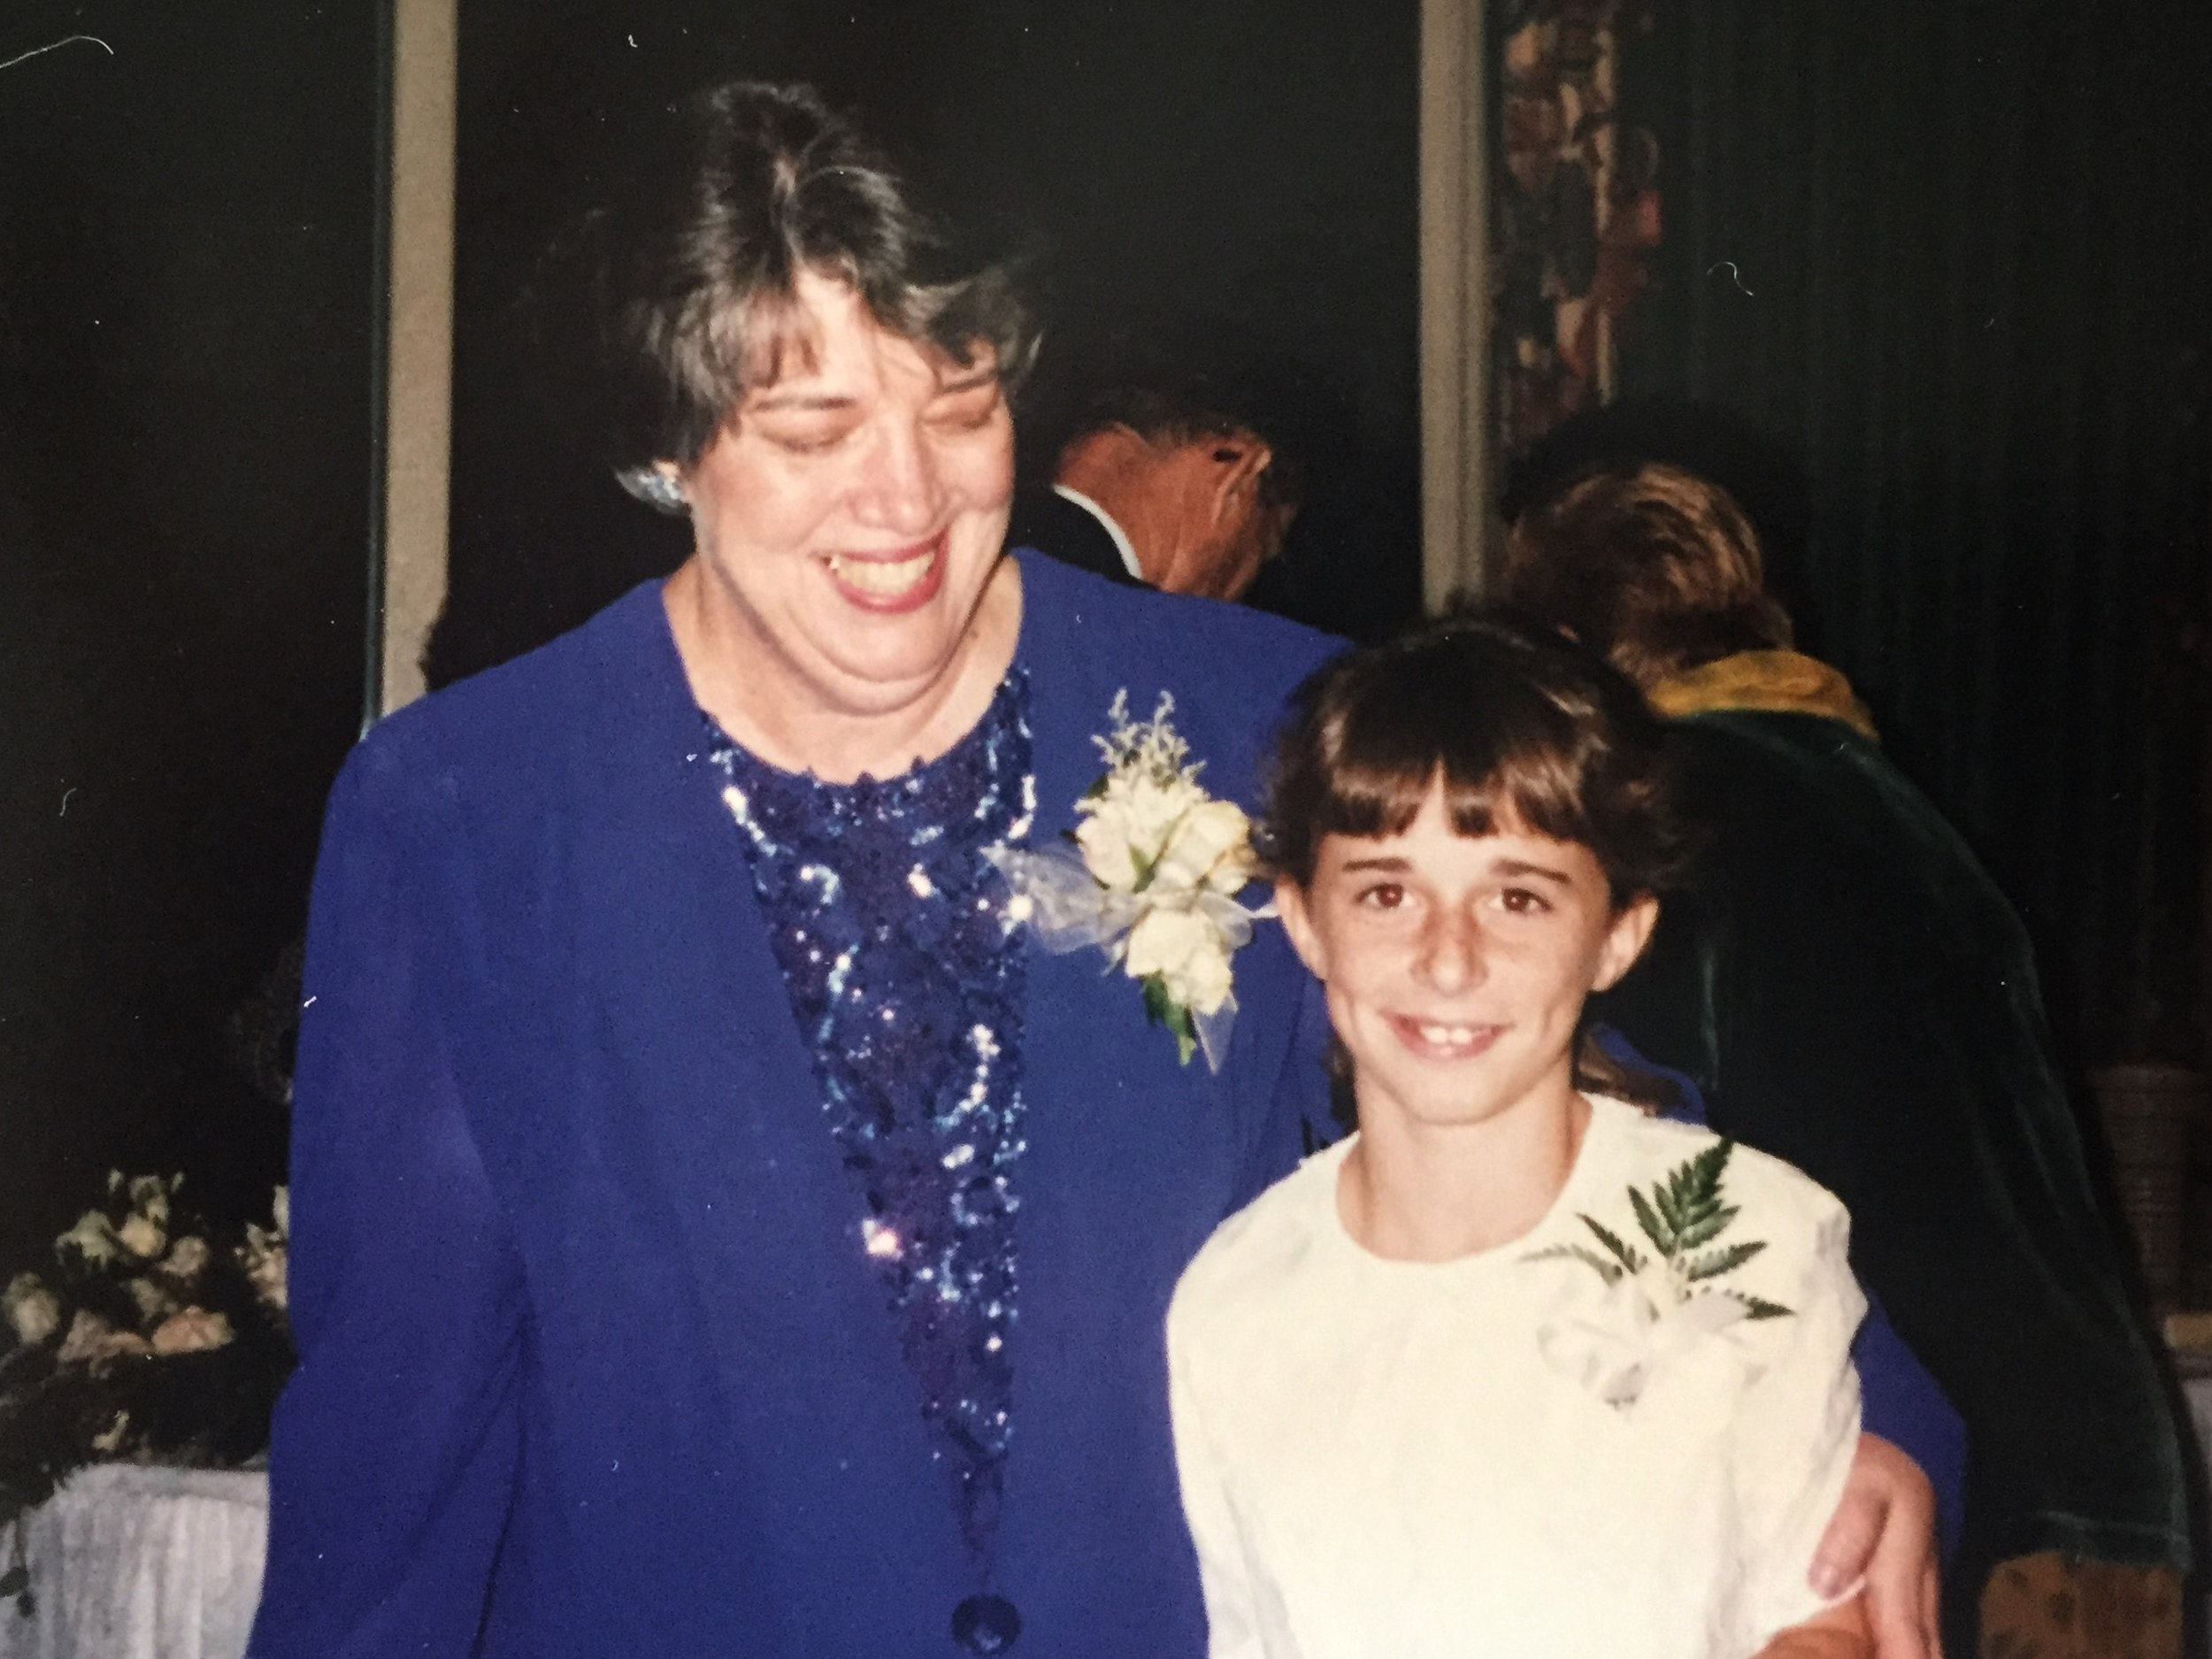 Mrs. Skelton liked our class so much she invited us all to her daughter's wedding. This is she and I at the reception.